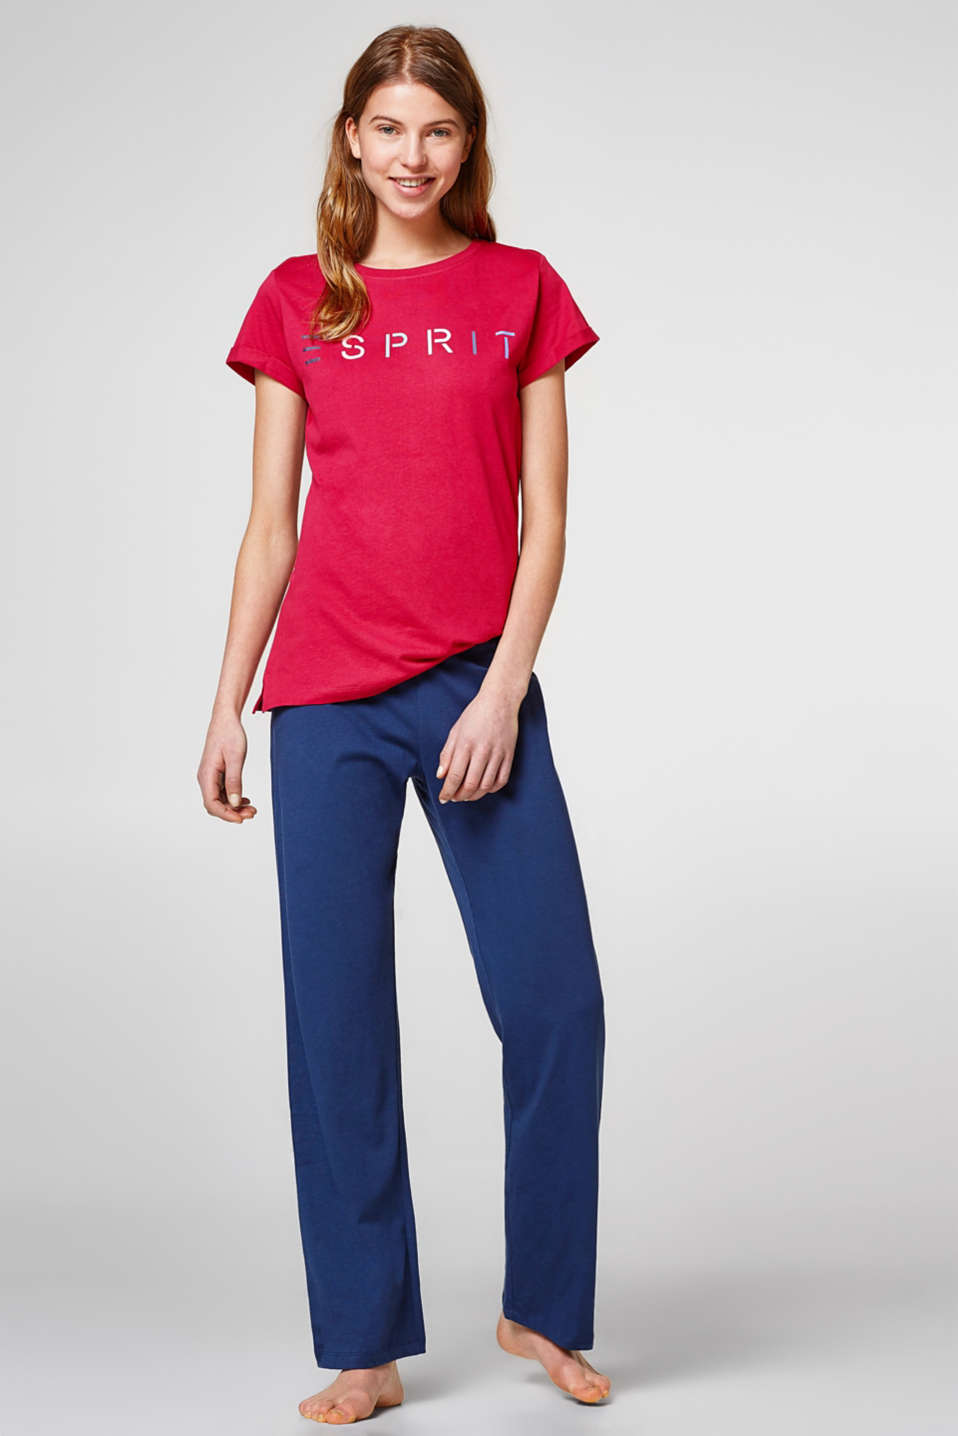 Esprit - Jersey pyjamas with a logo, 100% cotton